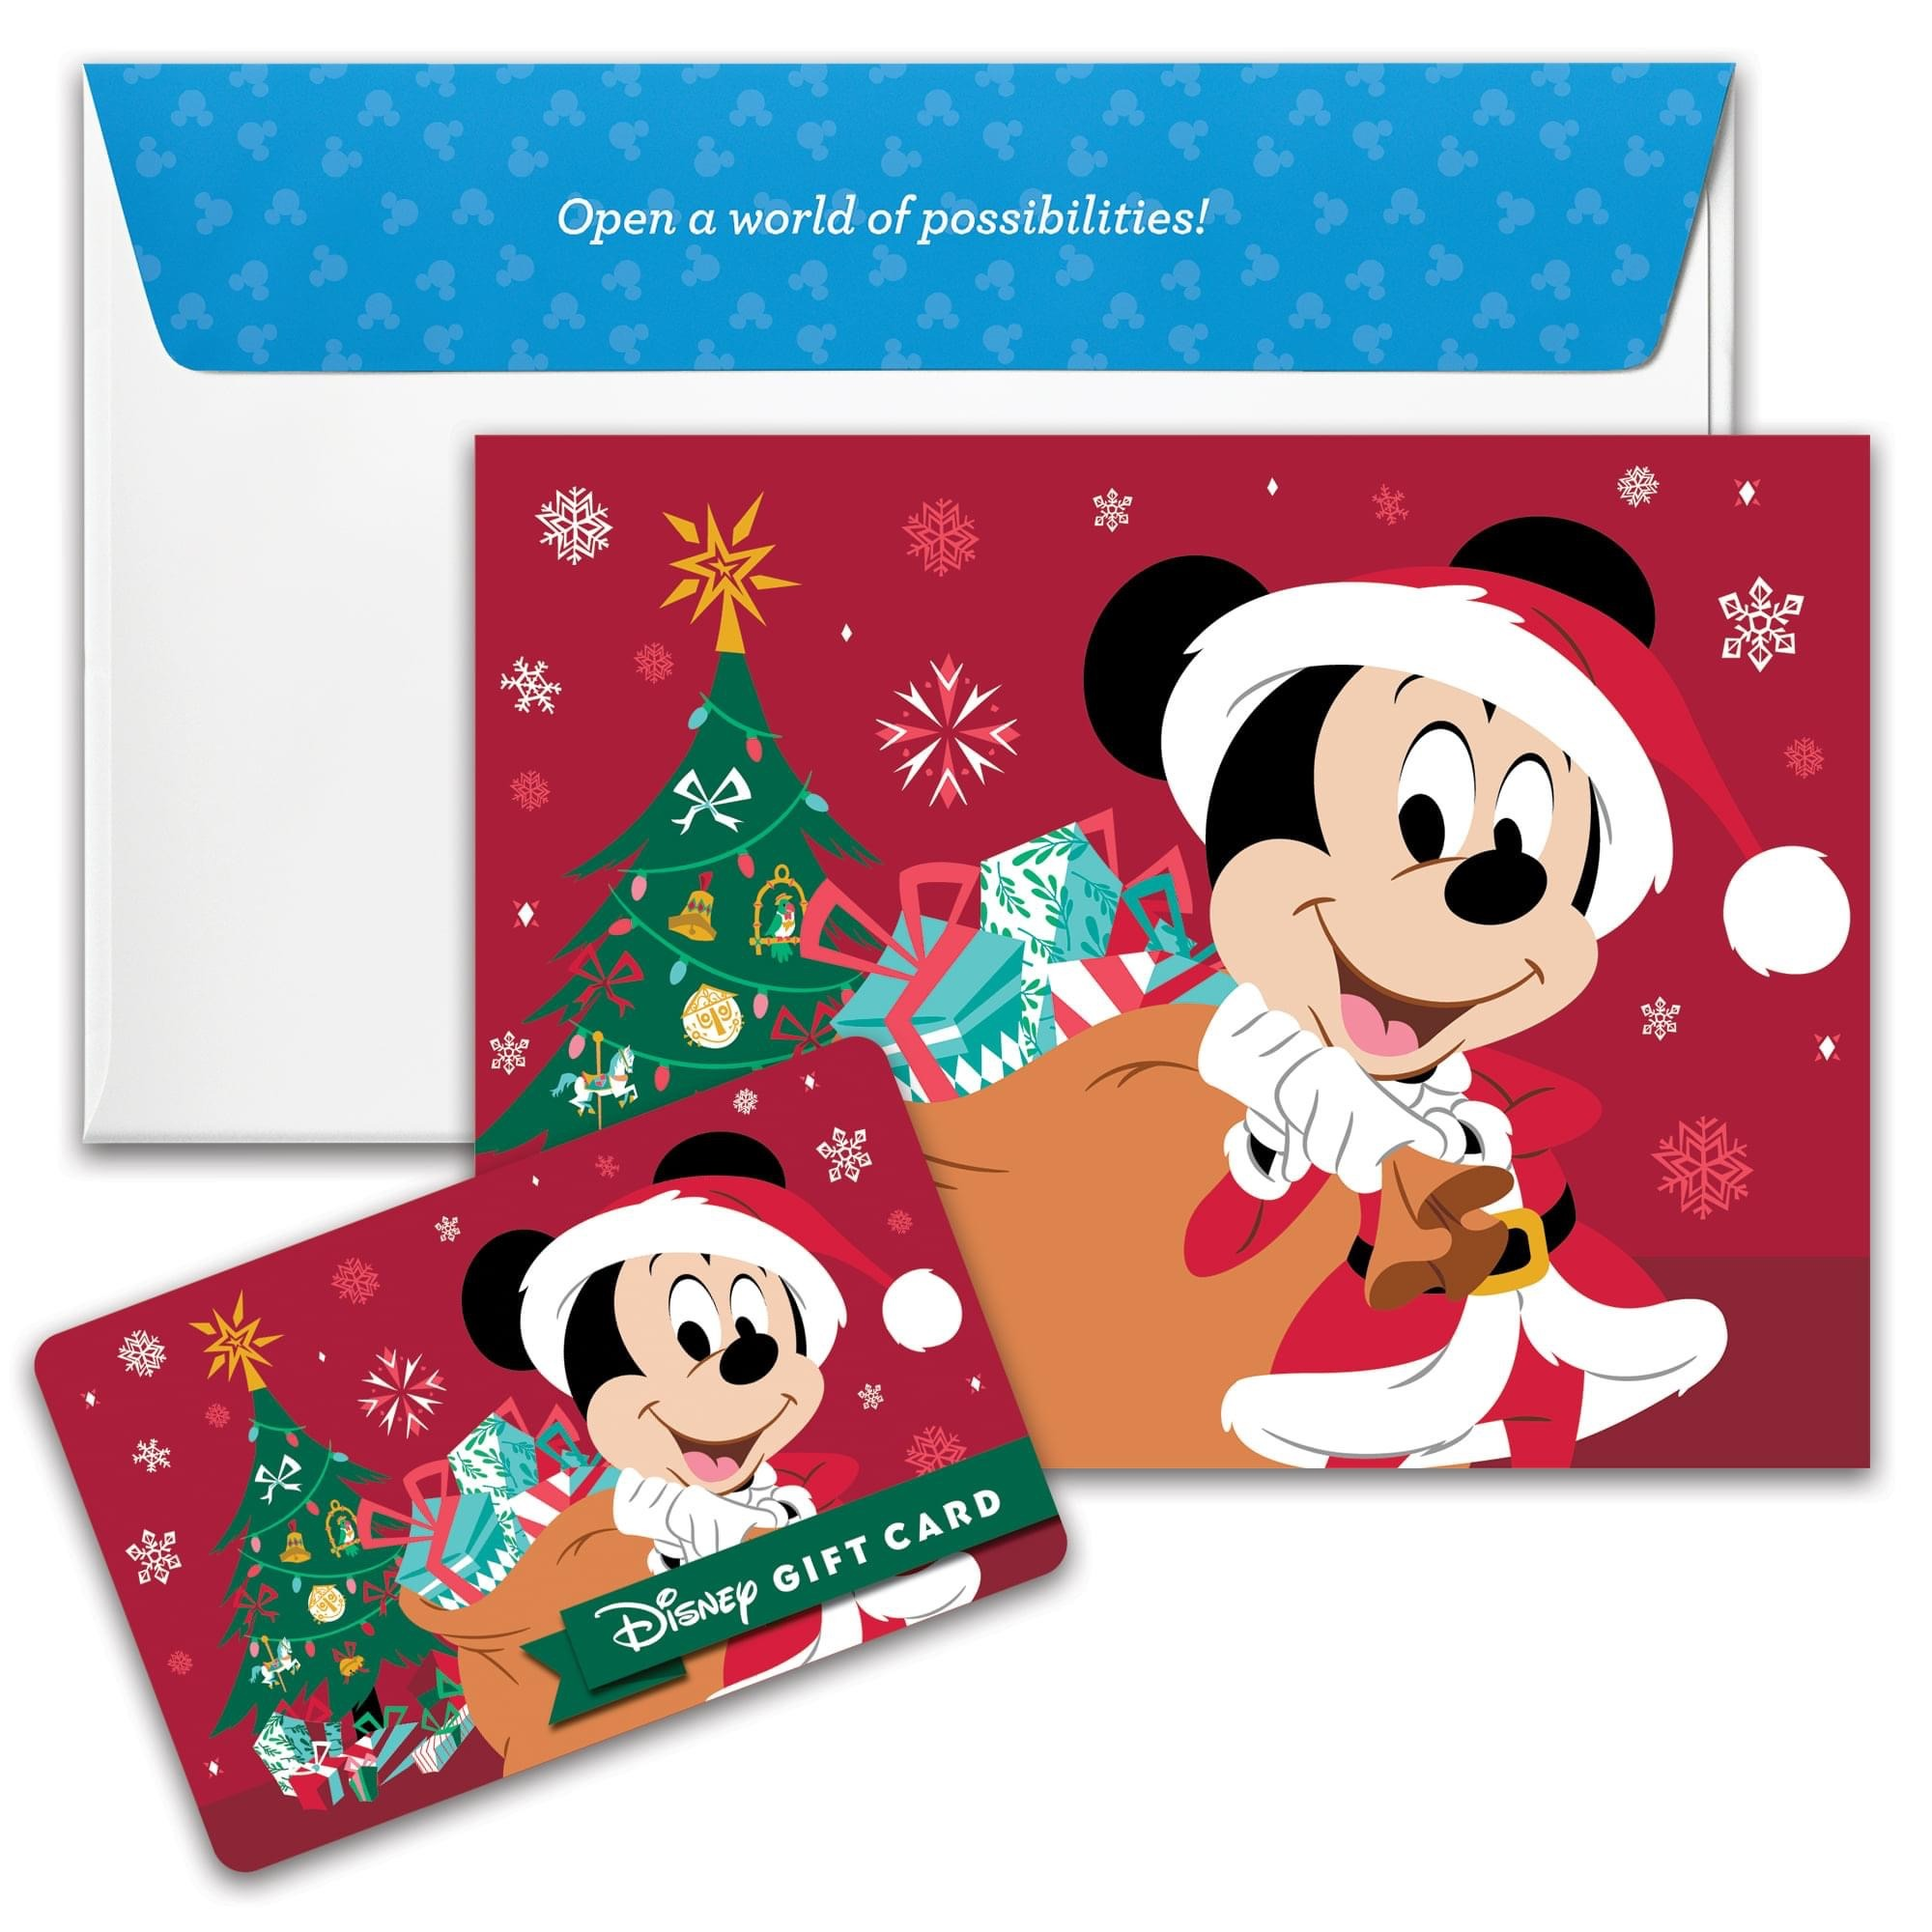 New Disney Gift Card Designs for Your Holiday Gift Giving from shopDisney! 3